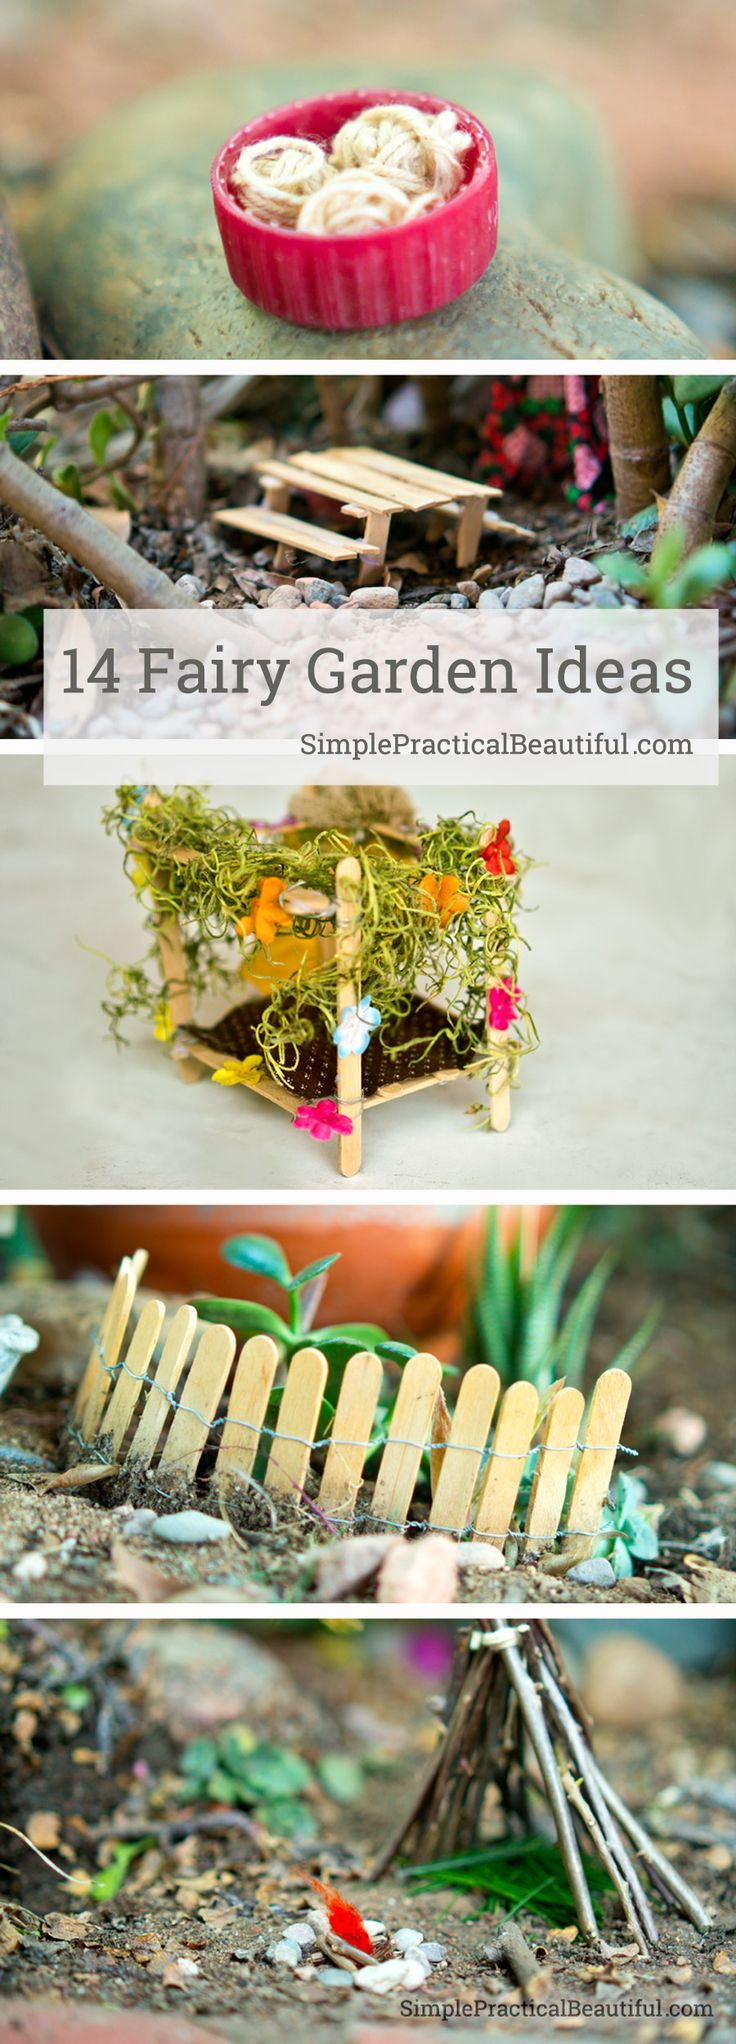 Fairy Gardens Ideas 16 do it yourself fairy garden ideas for kids 6 Lots Of Easy Diy Fairy Garden Ideas For Making Cute Miniature Accessories And Fairy Houses